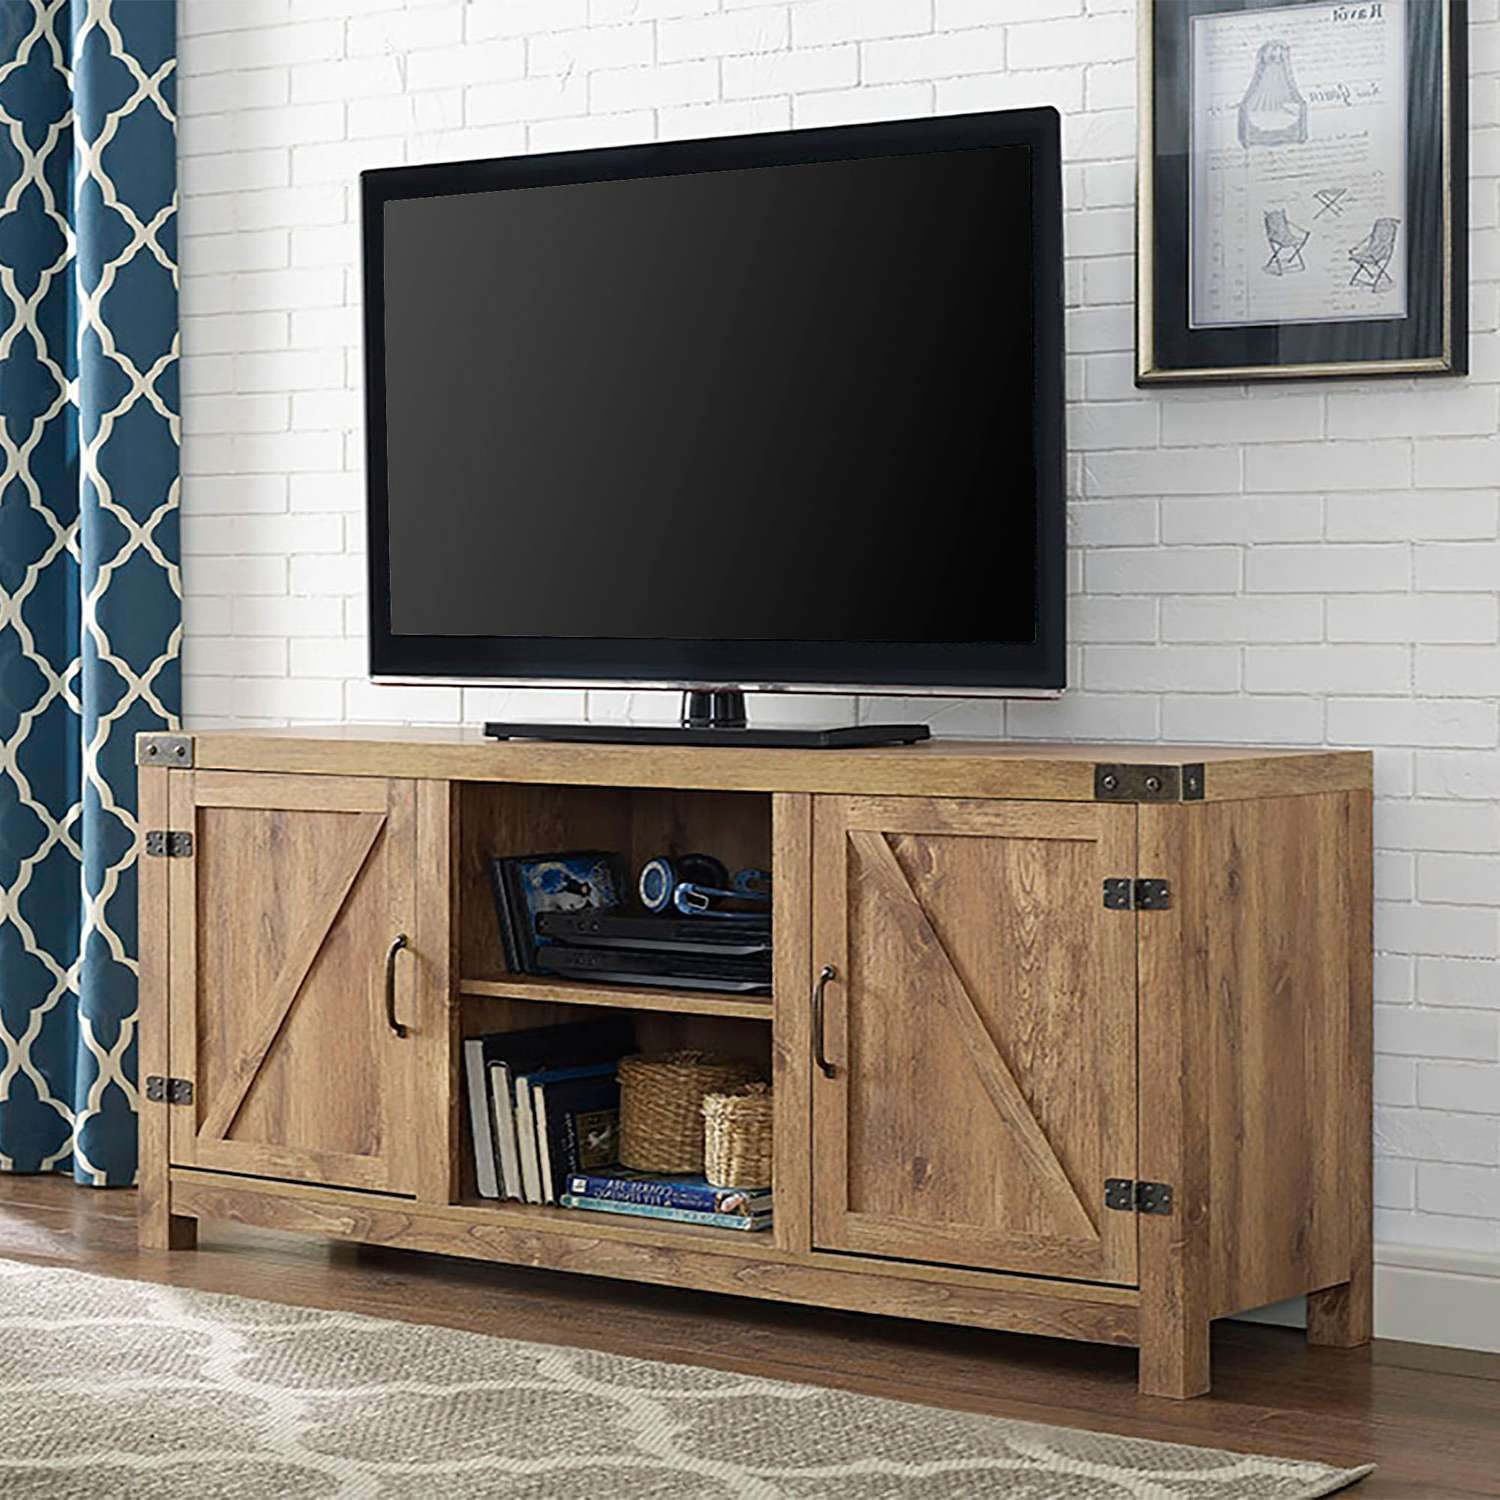 Tv Stands & Cabinets On Sale | Bellacor Within Tv Stands 40 Inches Wide (View 12 of 15)